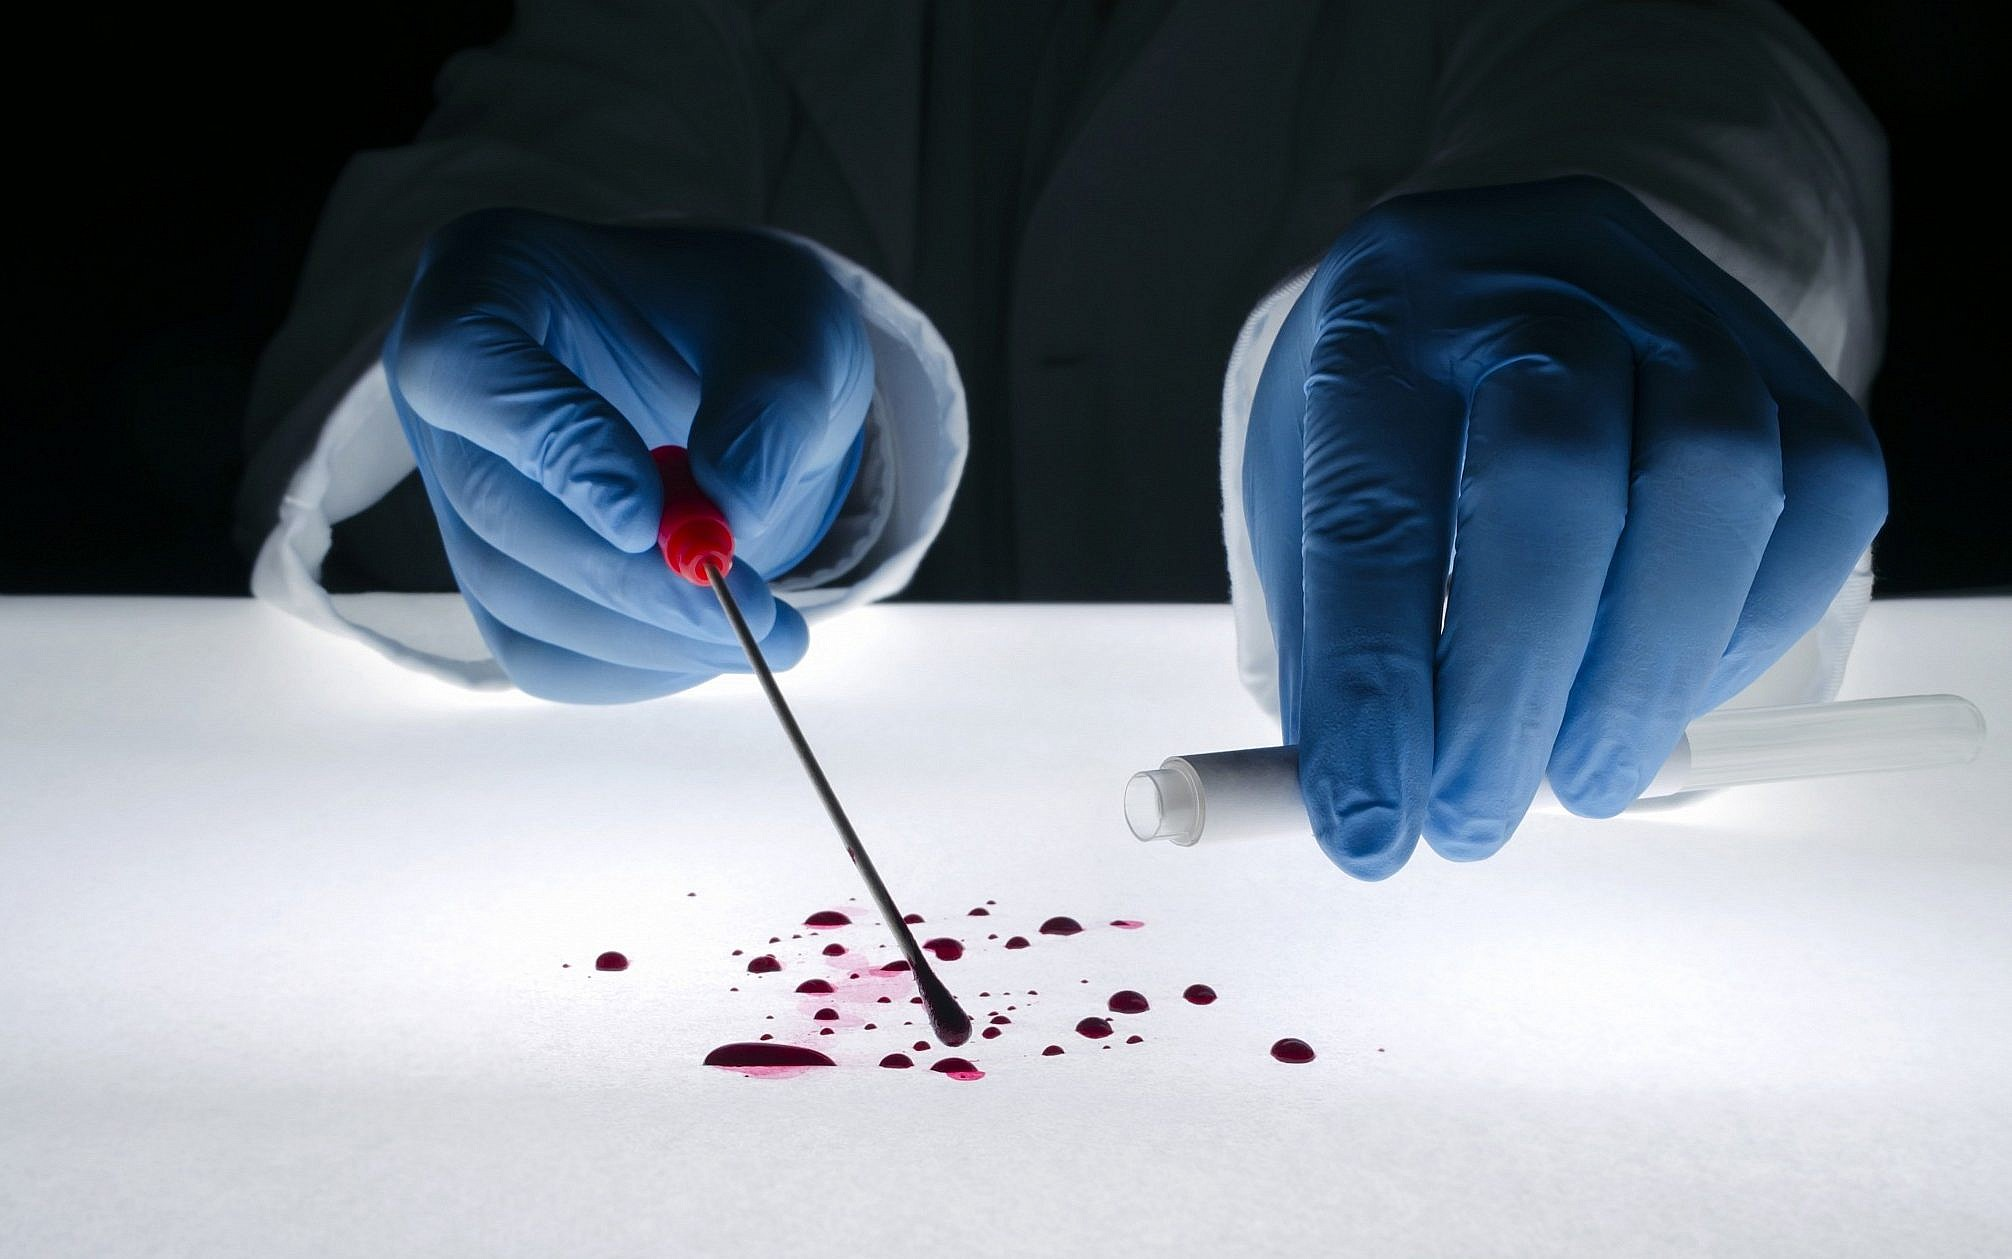 Csi Beersheba Israeli Team Develops Tool To Help Detect Blood At Crime Scenes The Times Of Israel